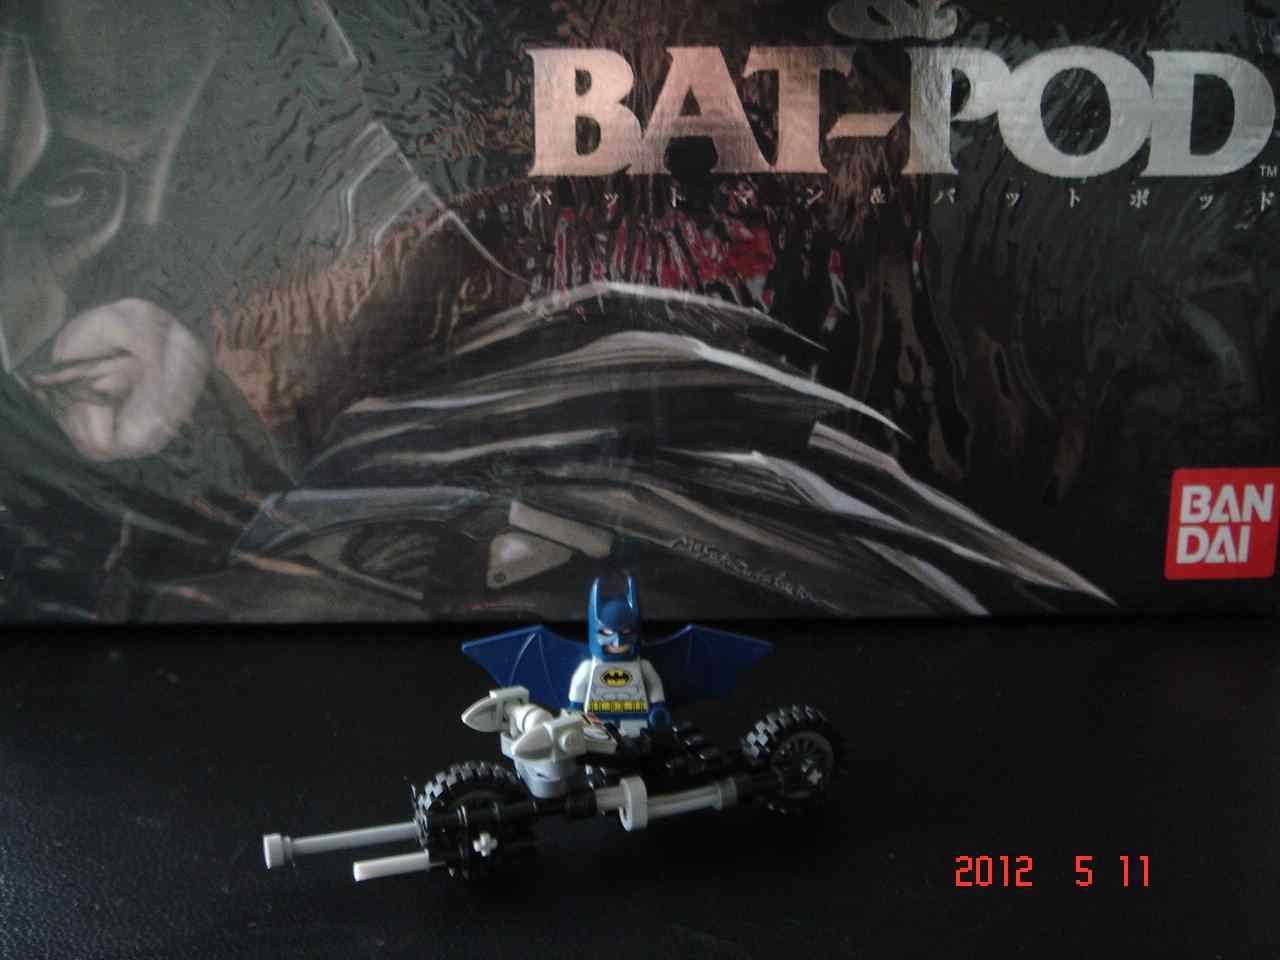 lego_batman_pod_ucc-office_051102.jpg